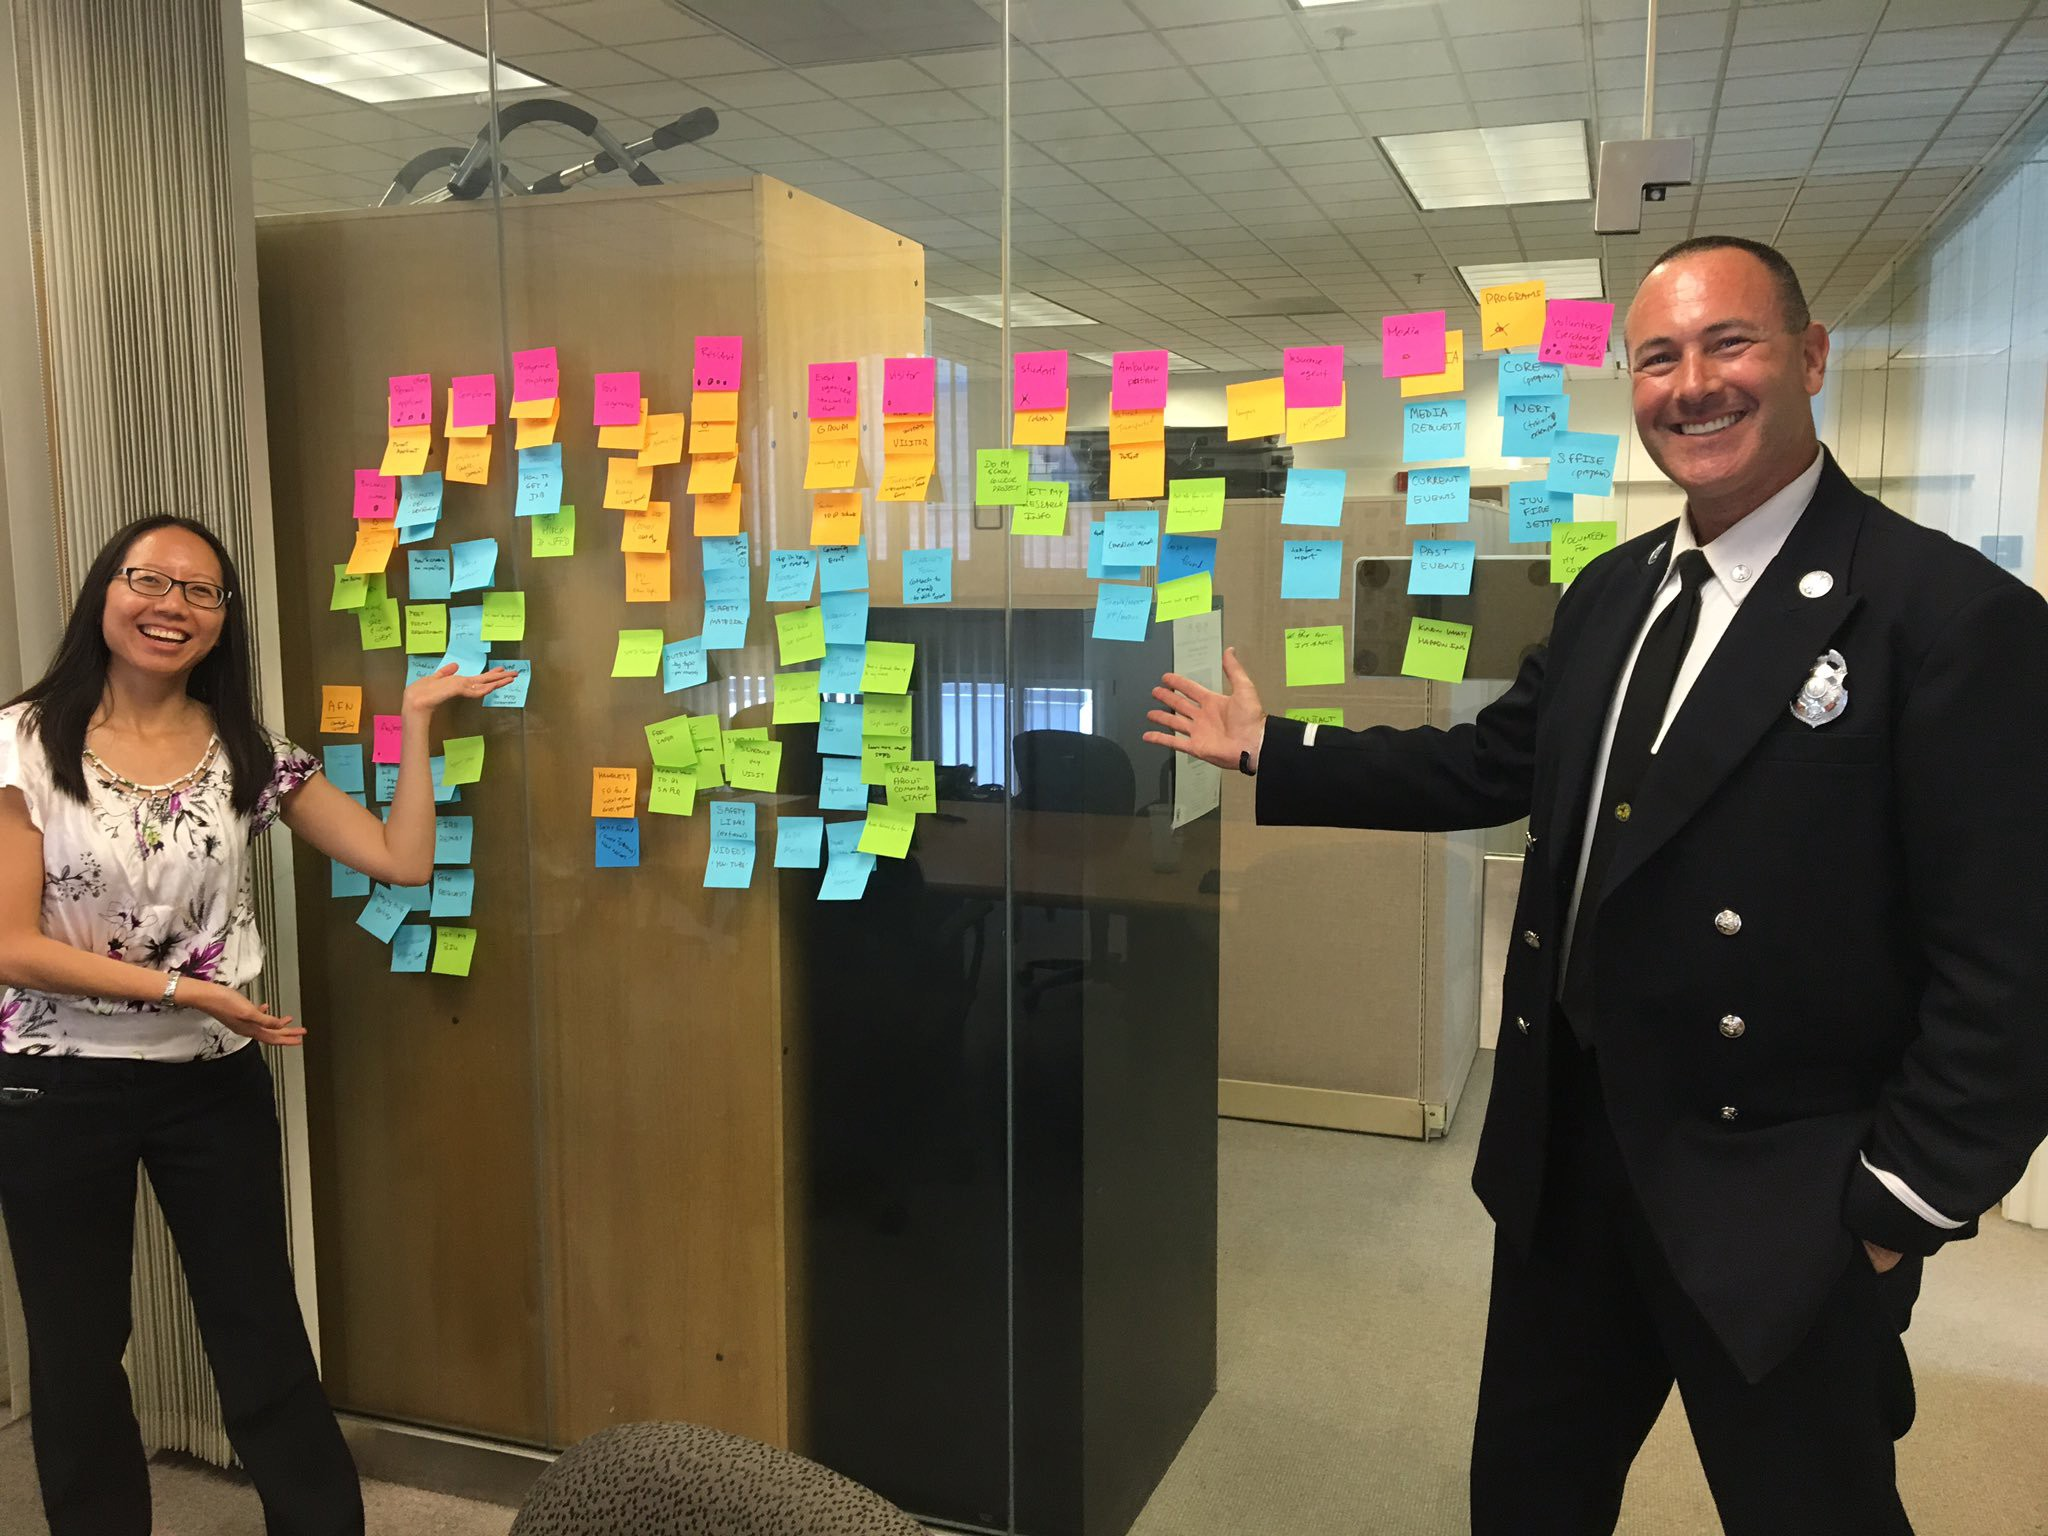 A content designer and Public Information Officer pose with a meeting room window covered in Post-Its after a workshop.